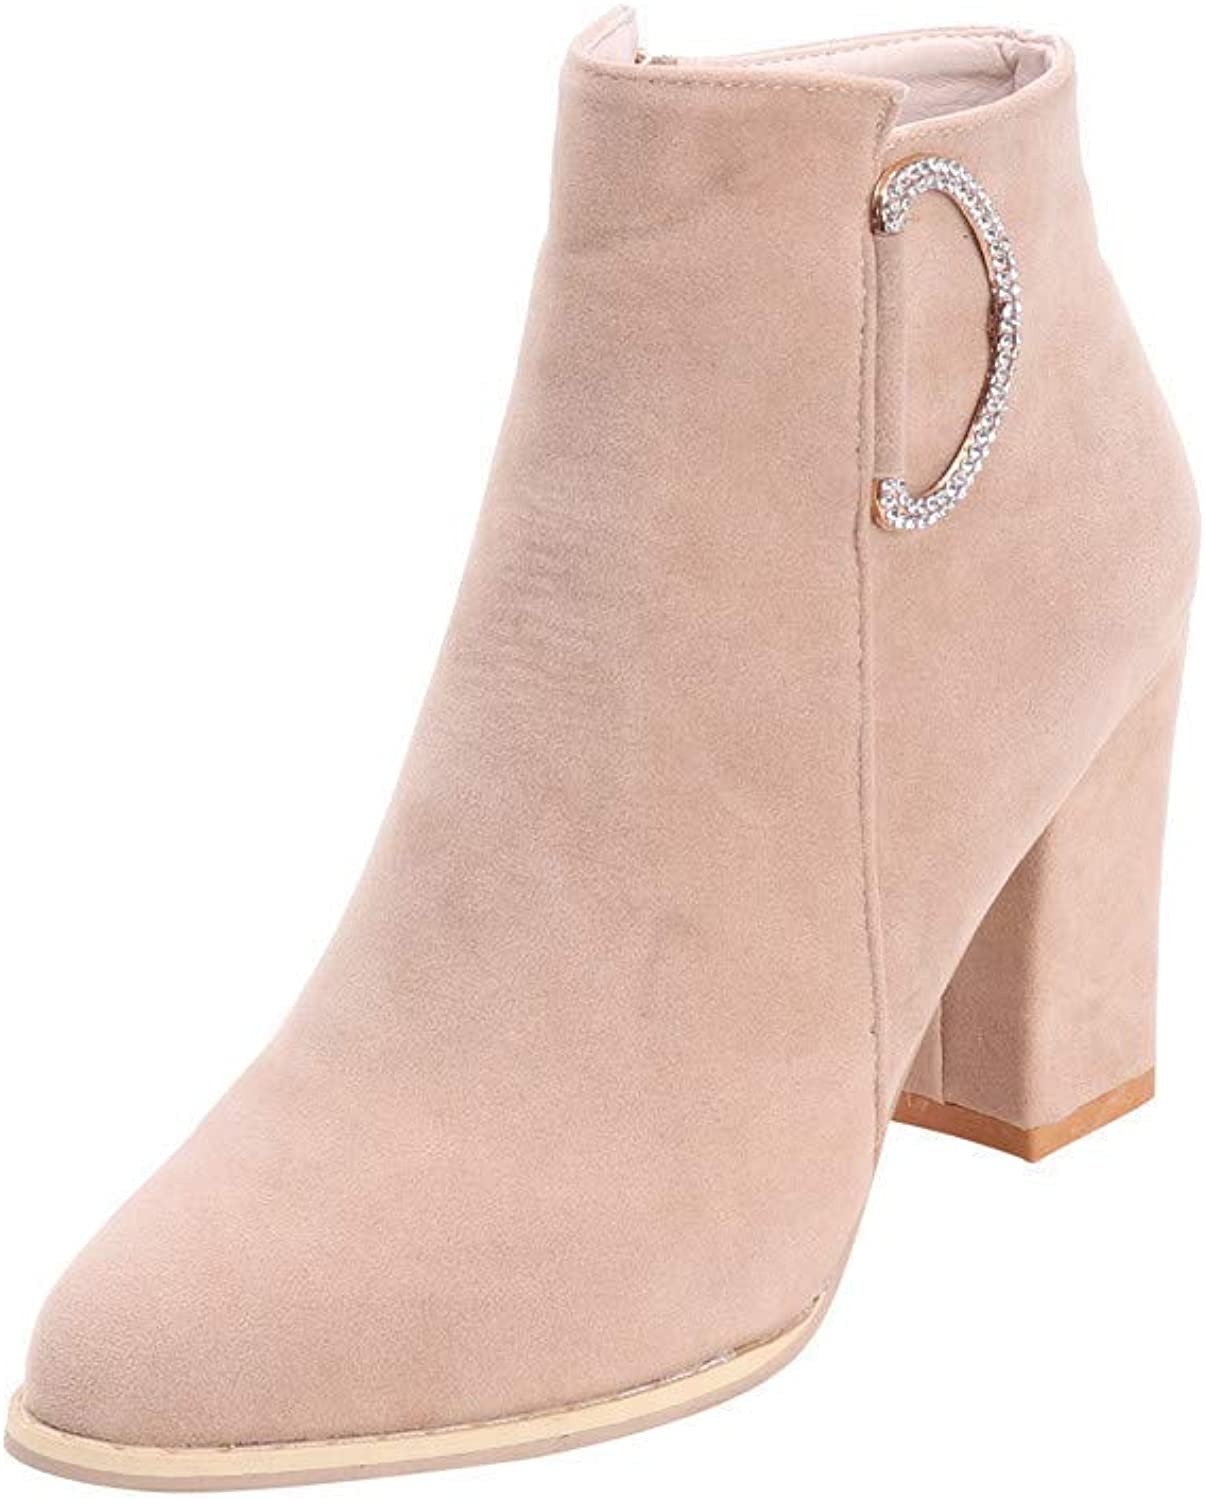 A-LING Charm Ankle Booties Soft Side Zipper High Heel Pointed Toe